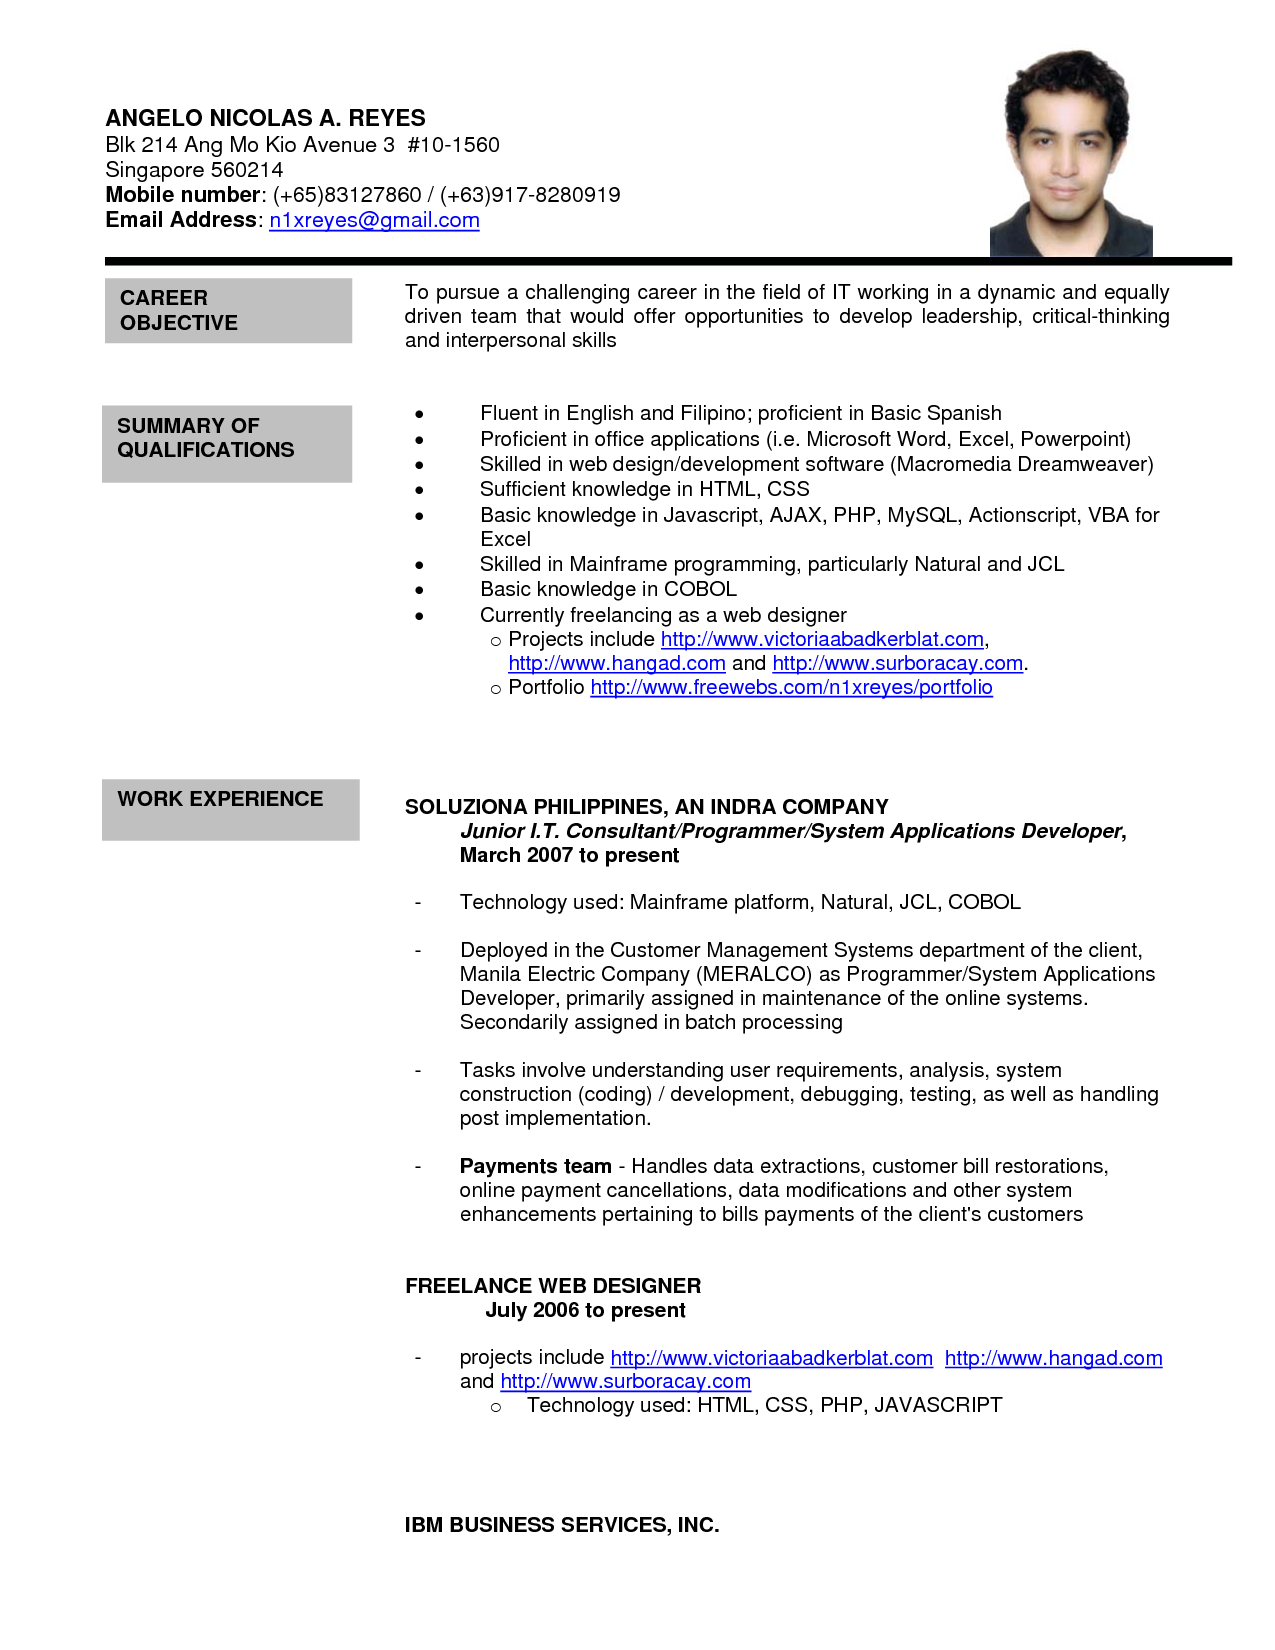 Formal Resume Format | Formal Letter Sample Sample Resume Format Best Template Character